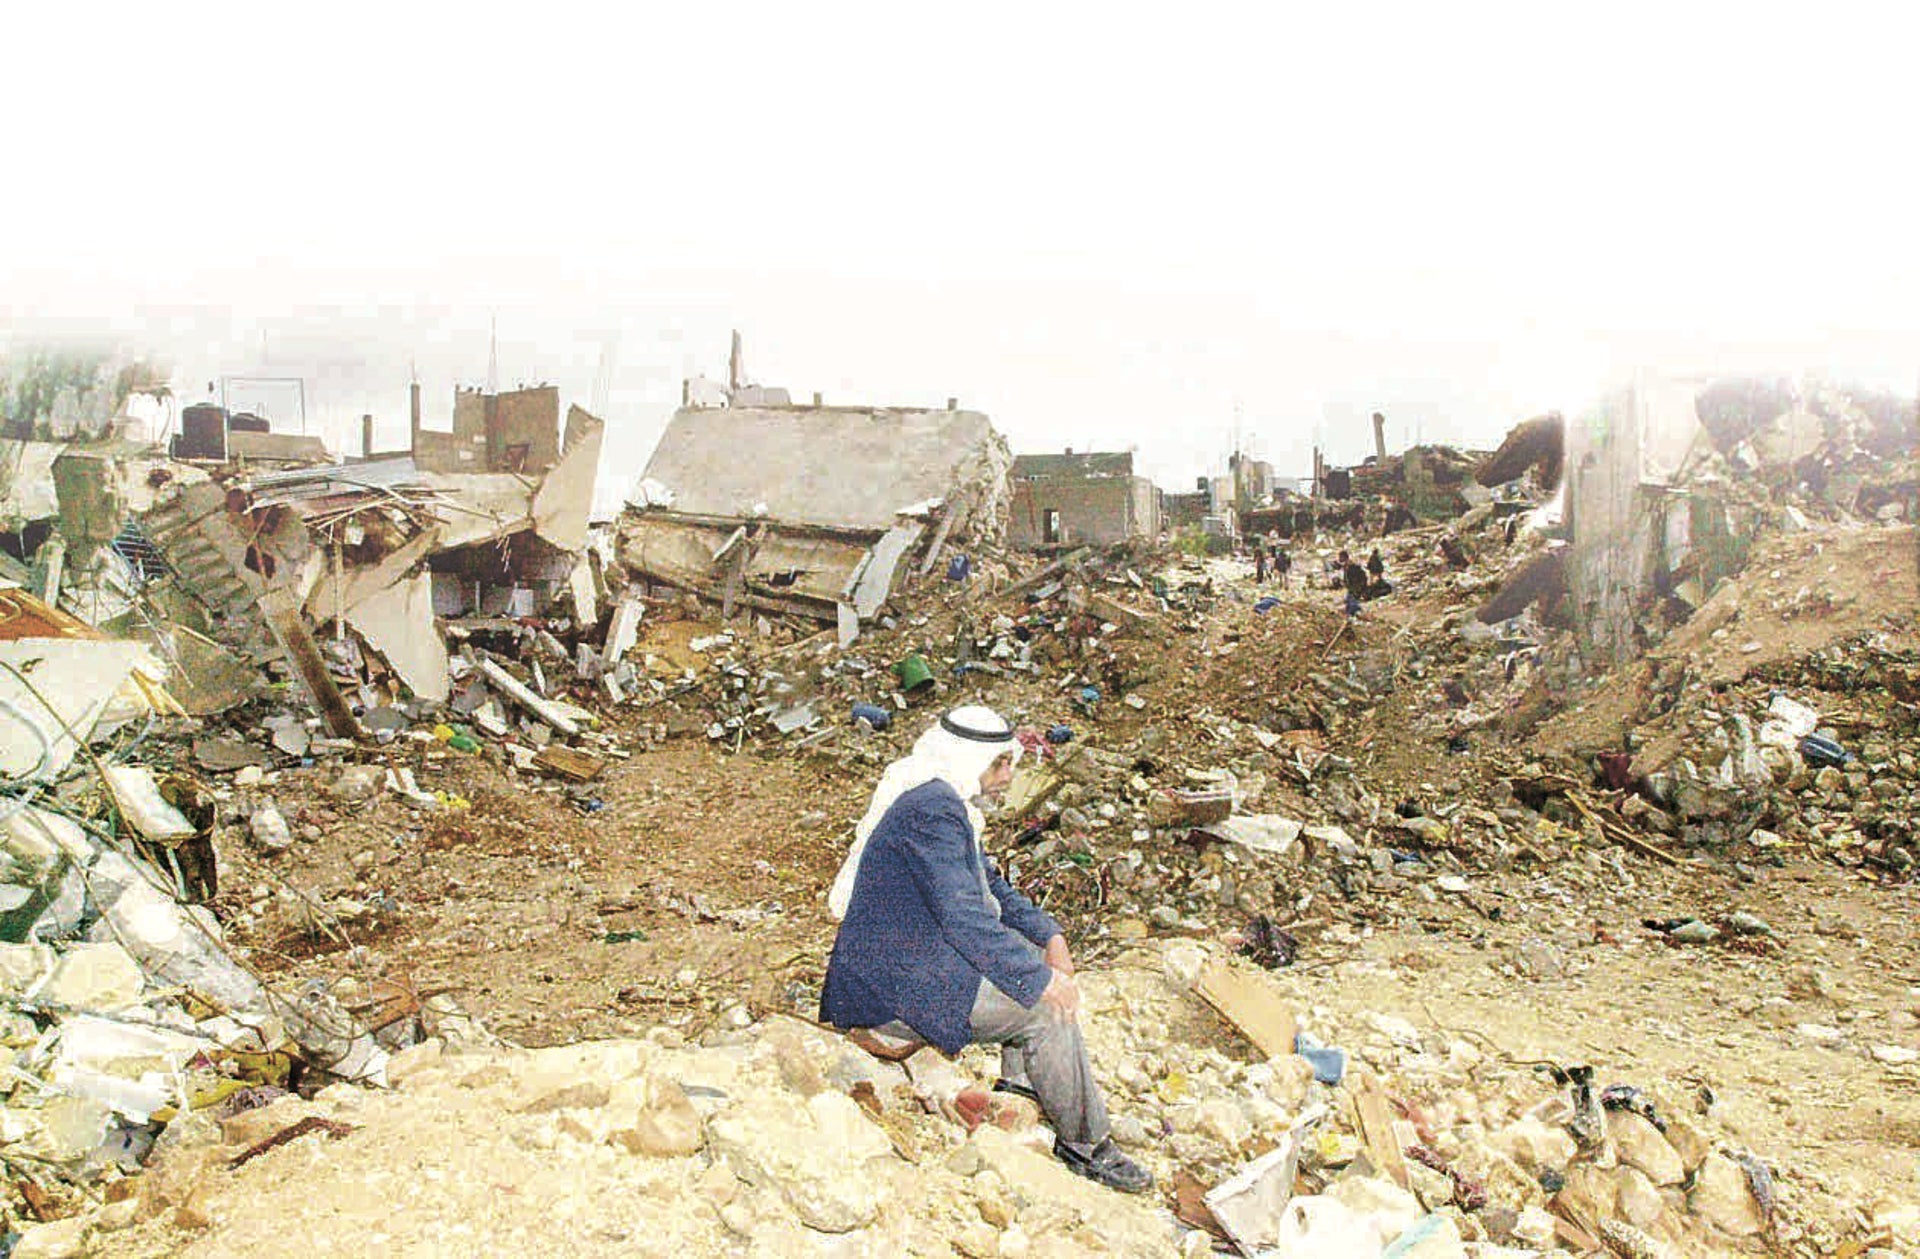 A man is sitting in the rubble in Jenin during Operation Defensive Shield, April 2002.